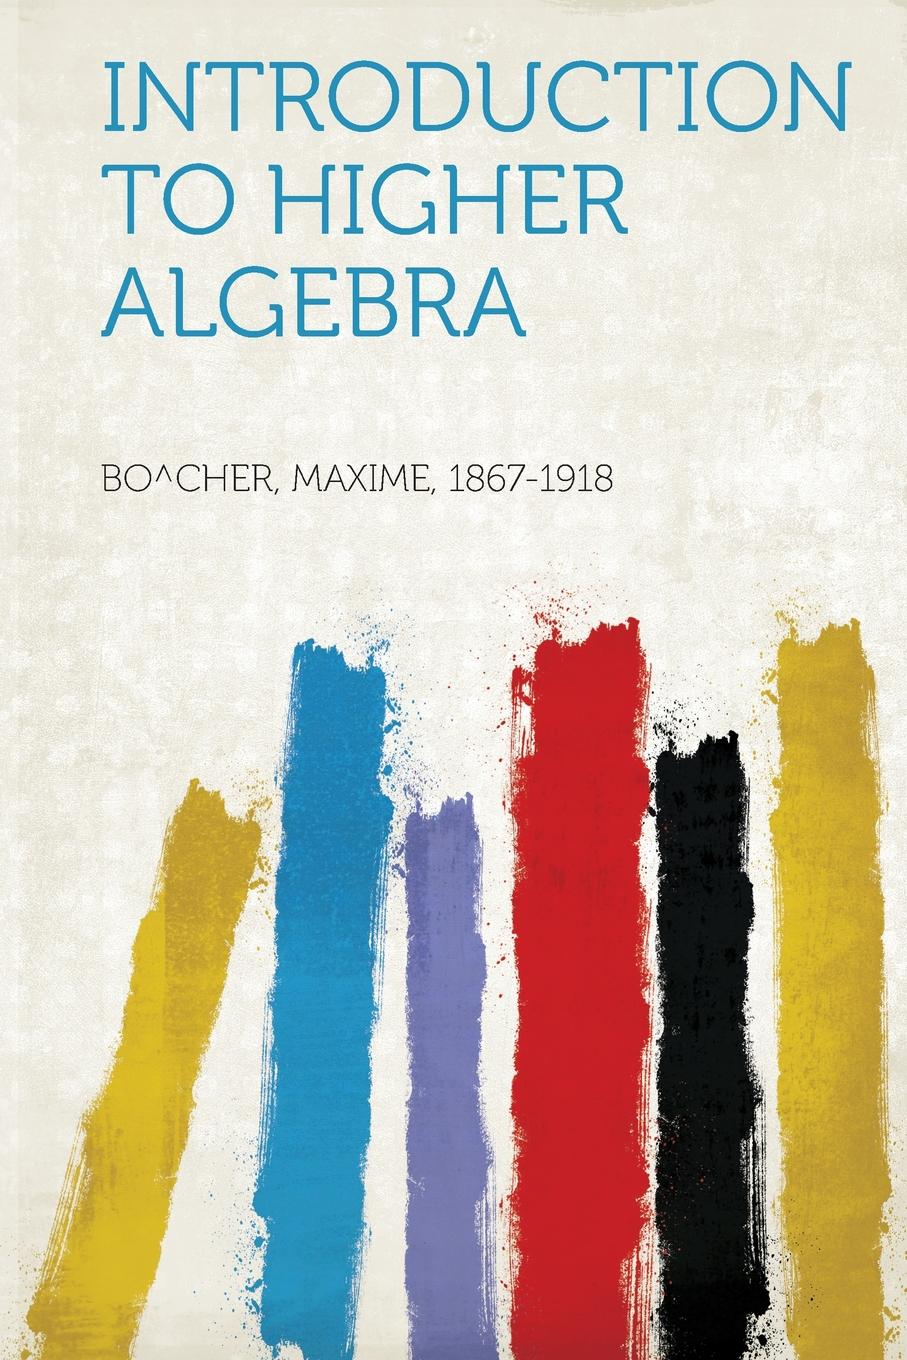 Bo^cher Maxime 1867-1918 Introduction to Higher Algebra